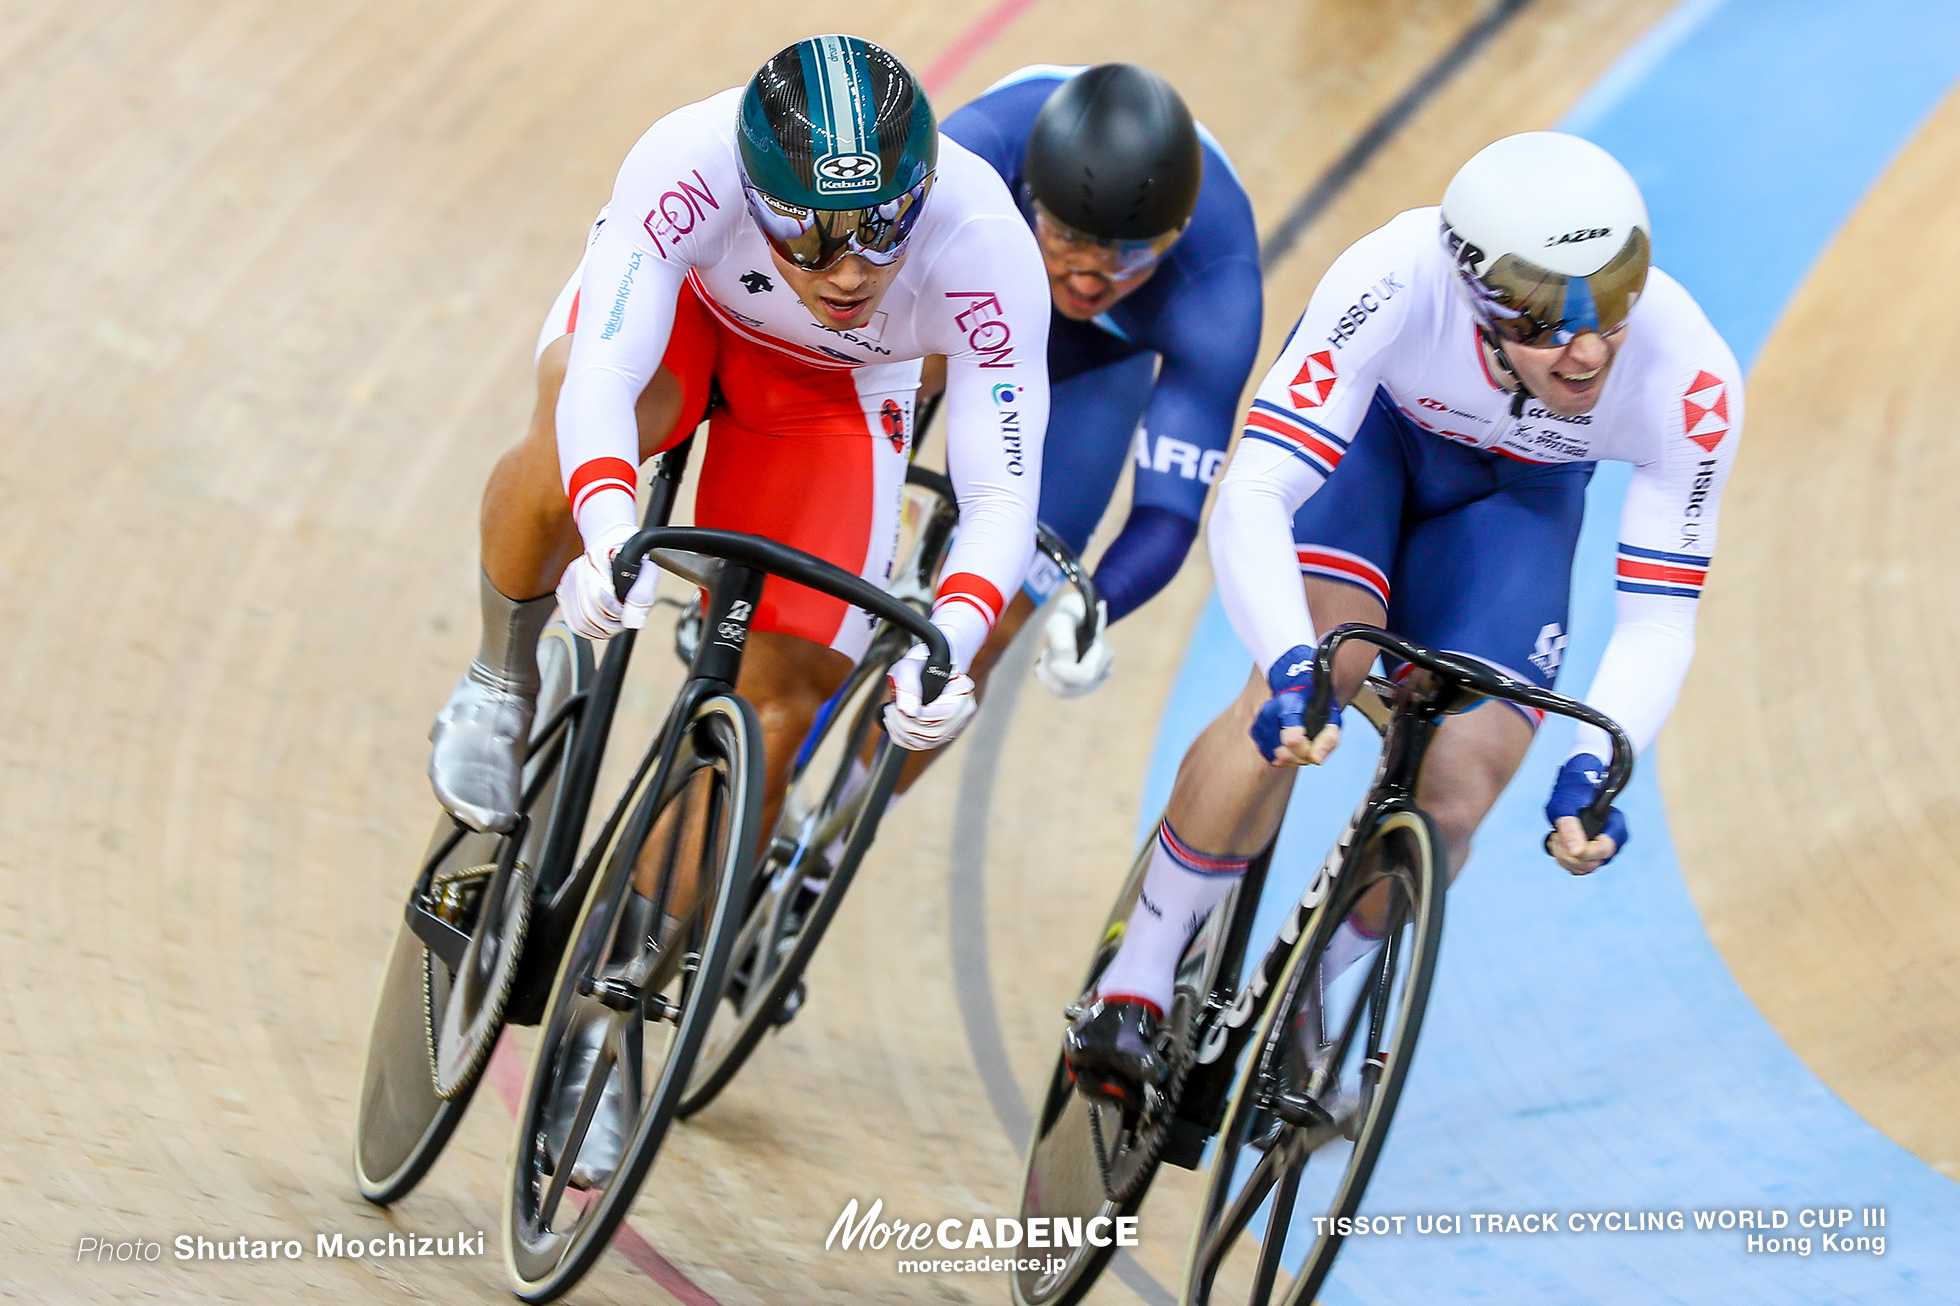 1st Round / Men's Keirin / TISSOT UCI TRACK CYCLING WORLD CUP III, Hong Kong